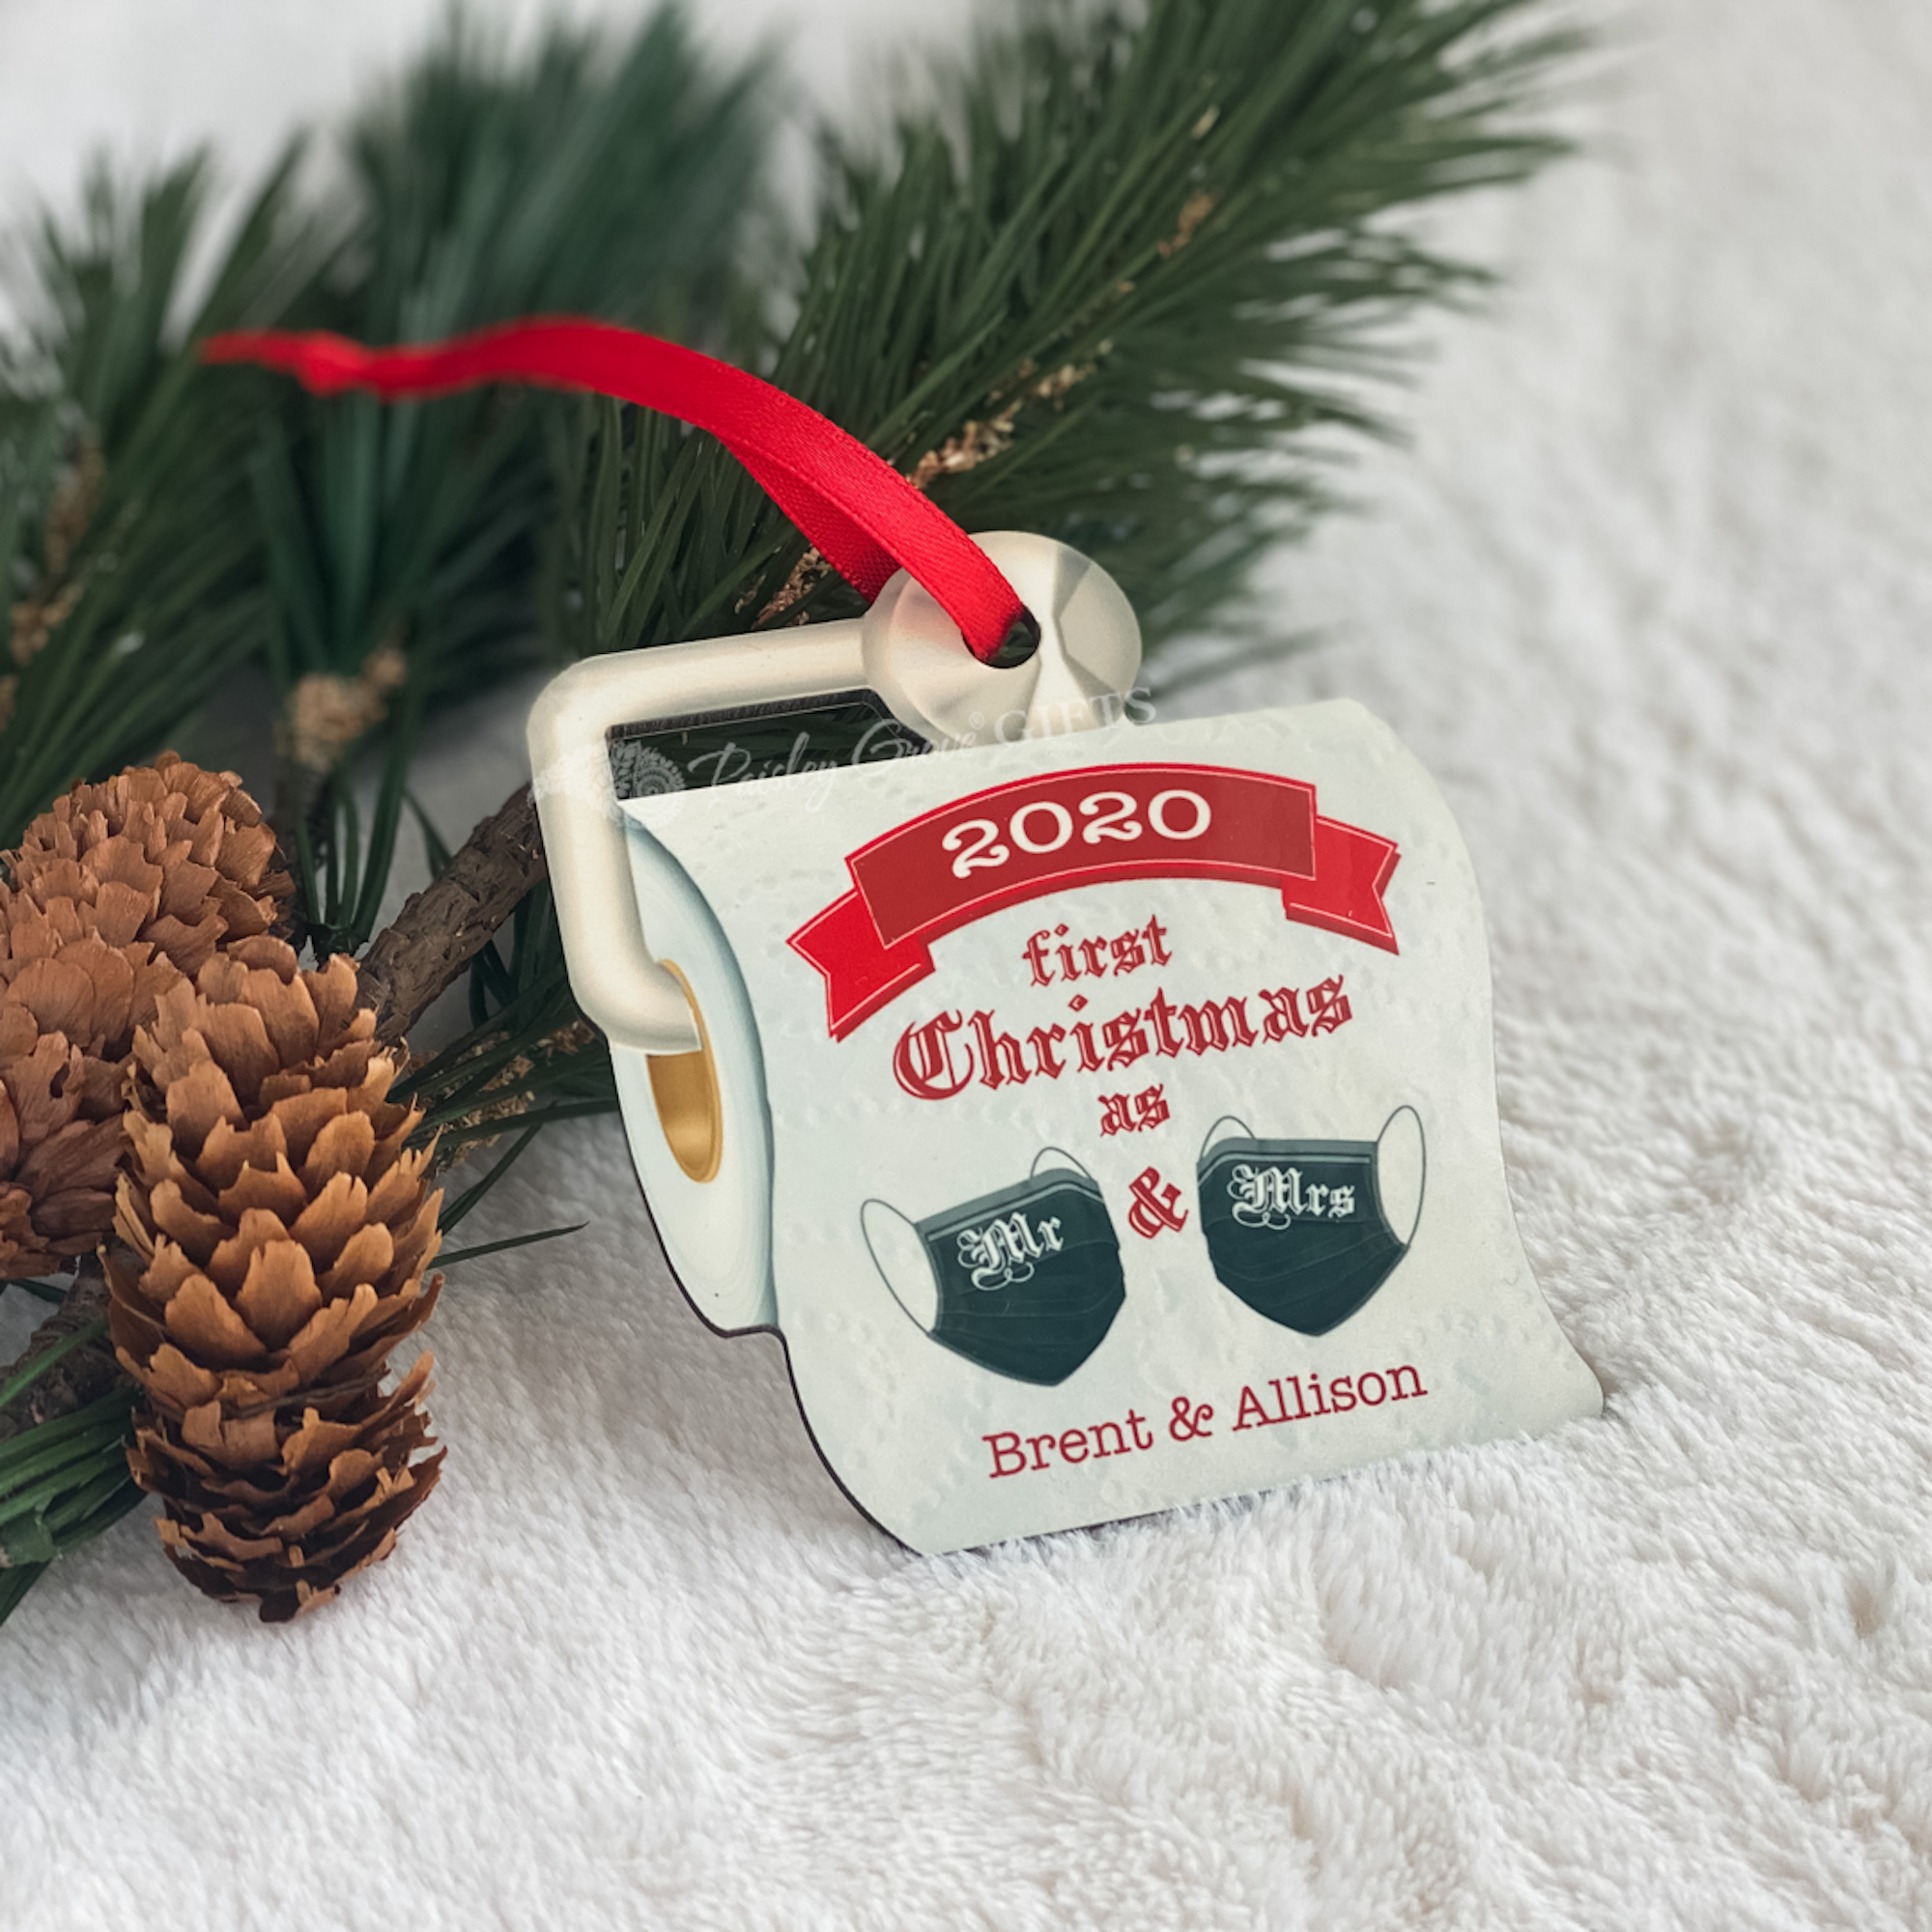 CopyrightPaisleyGroveGIFTS S525f2 Unique Christmas Ornament 2020 Quarantined Wedding